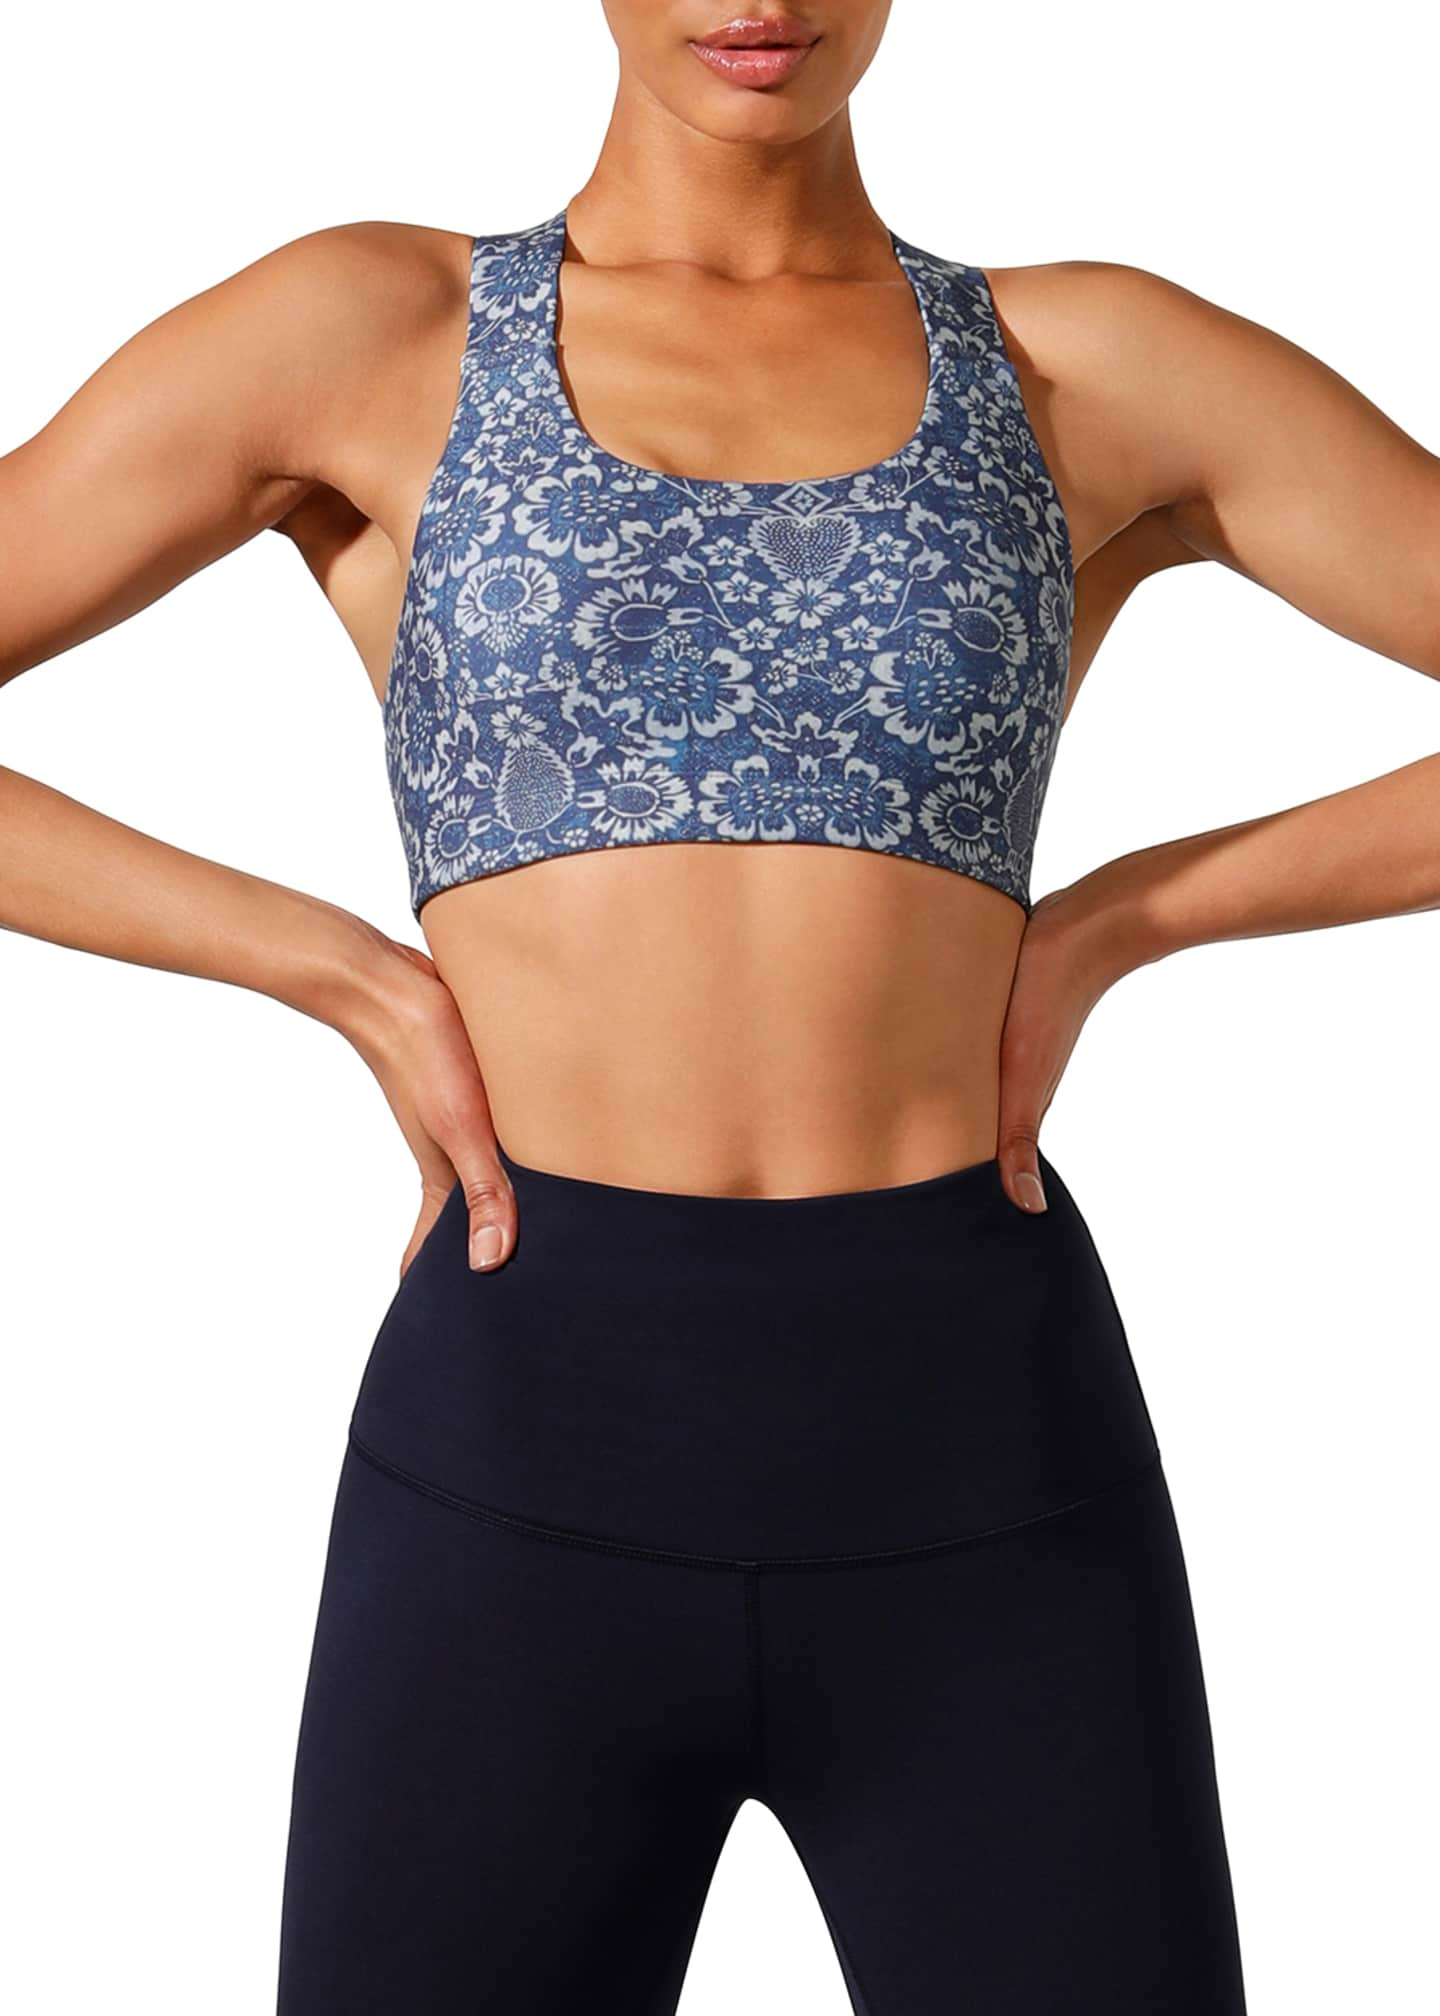 Lorna Jane Foundation Support Printed Sports Bra